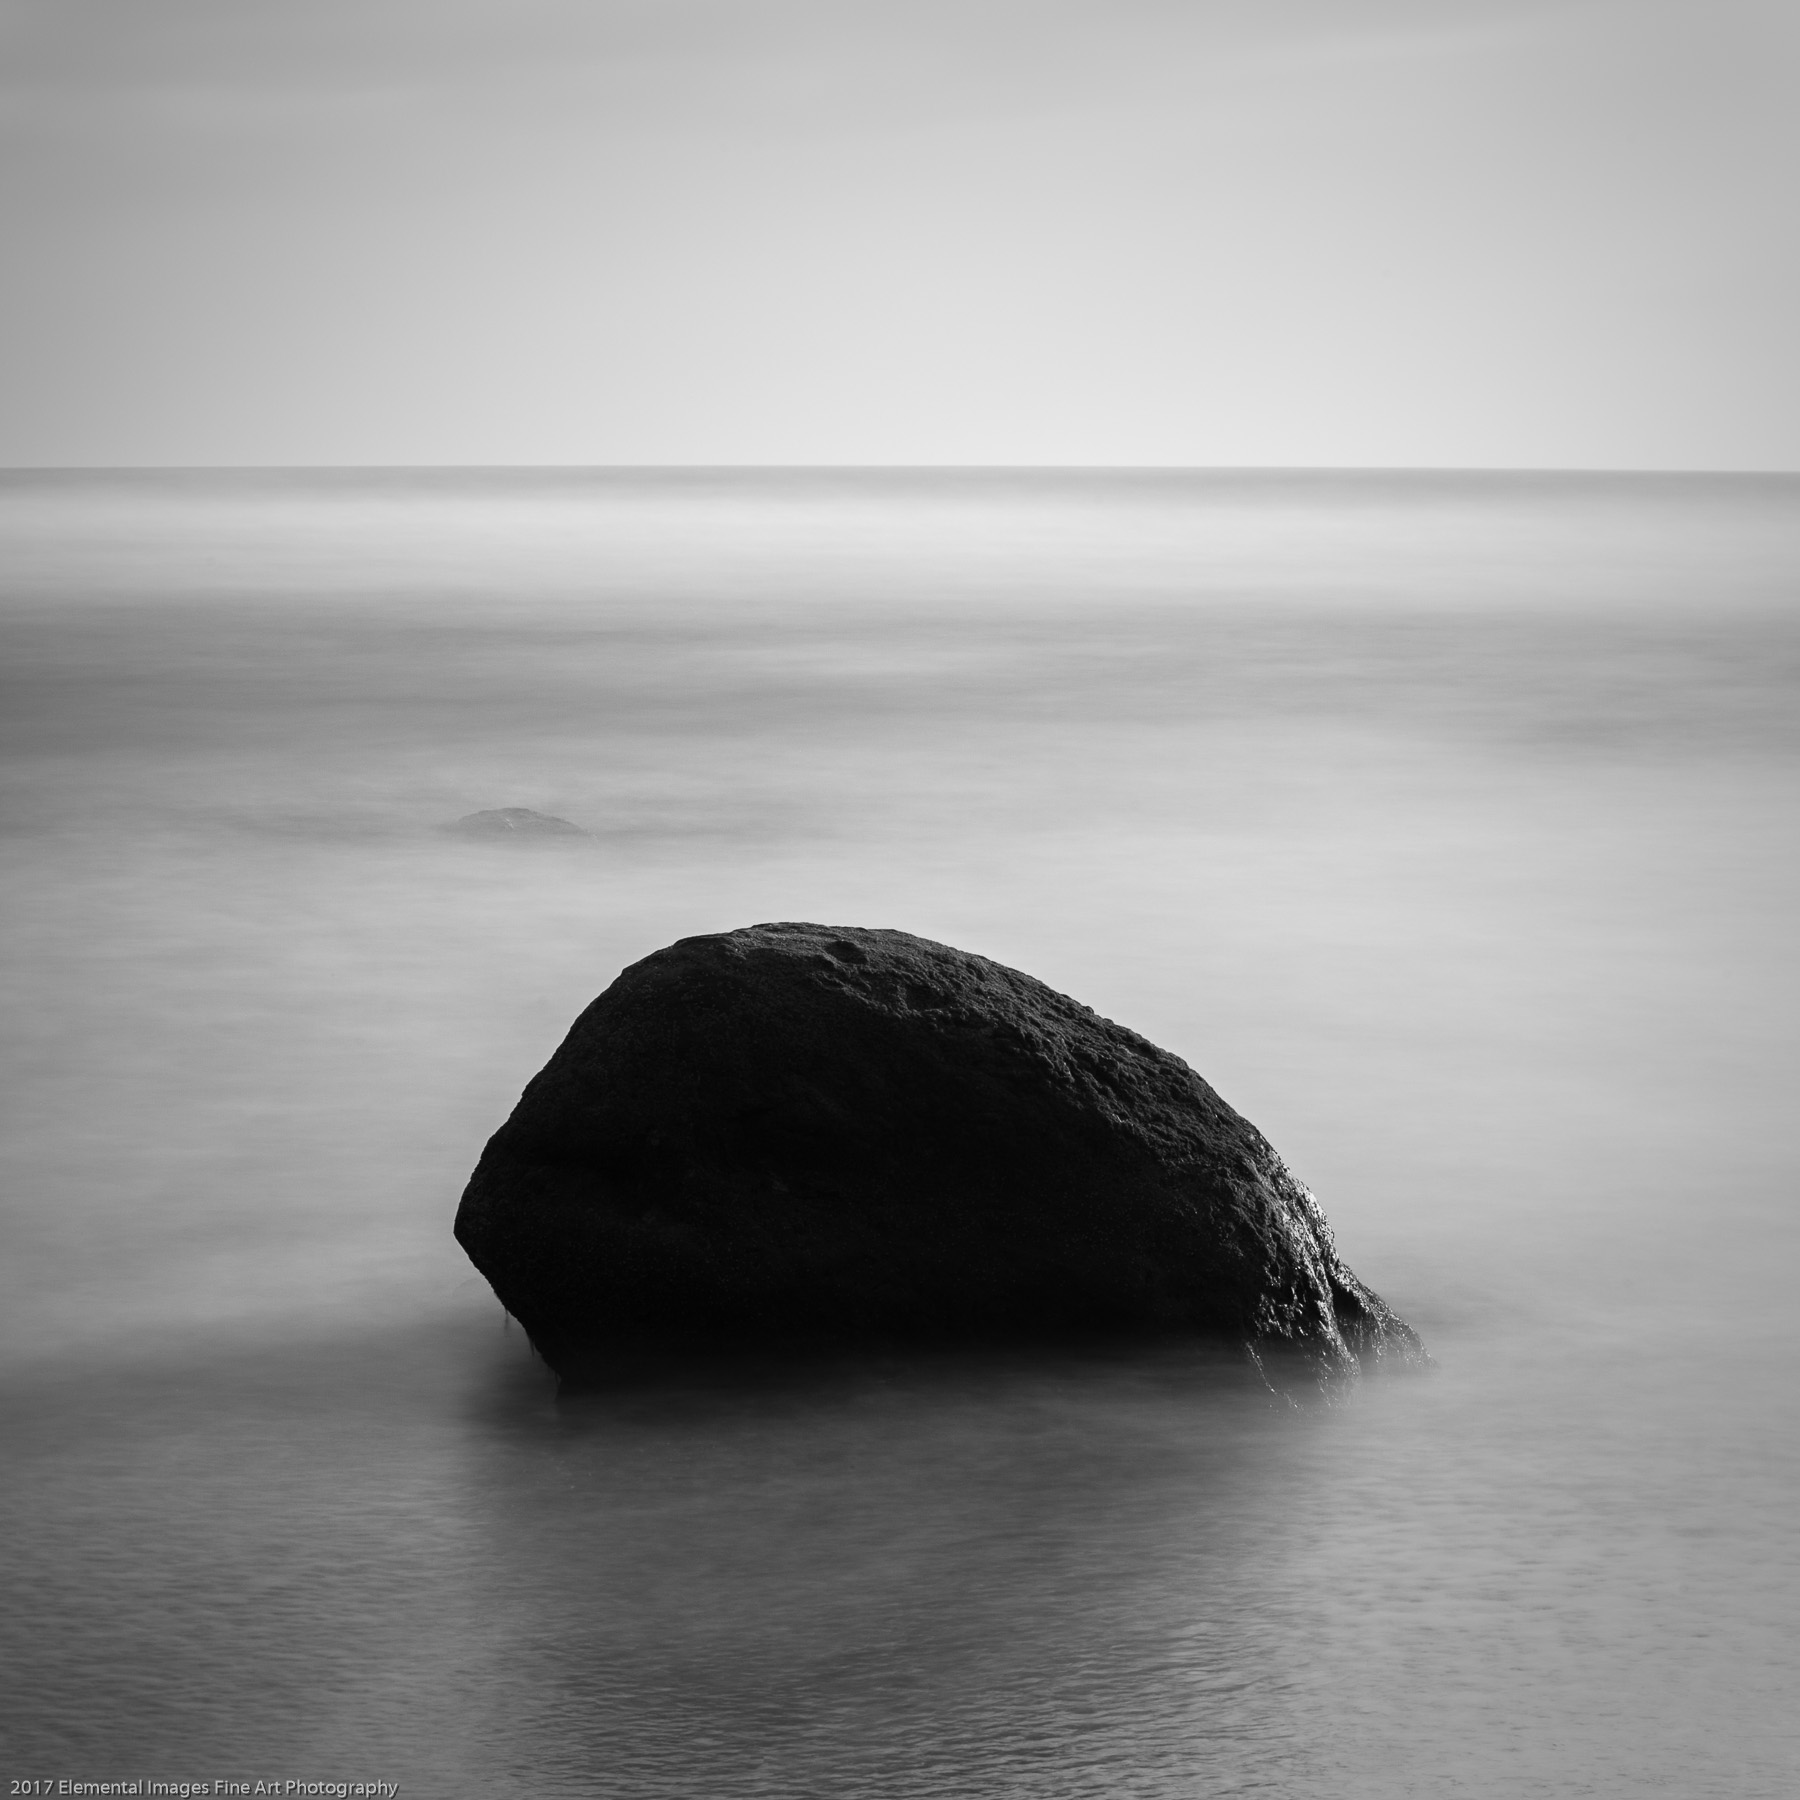 Zen Rocks #10 | Bandon | OR | USA - © 2017 Elemental Images Fine Art Photography - All Rights Reserved Worldwide